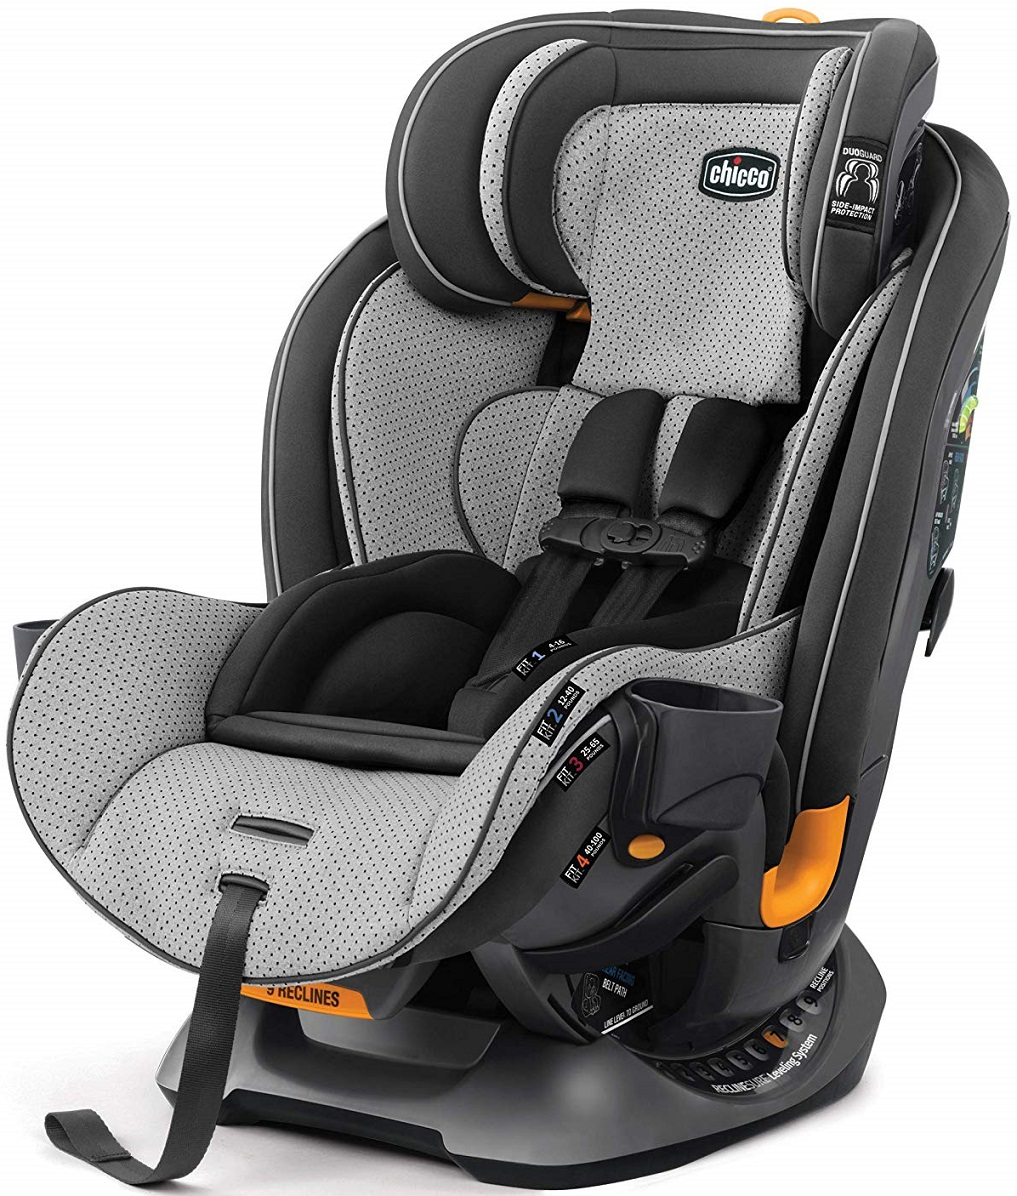 Chicco Fit4 Vs Nextfit Zip Differences Which One Is More Suitable For Your Child Car Seat Comparison